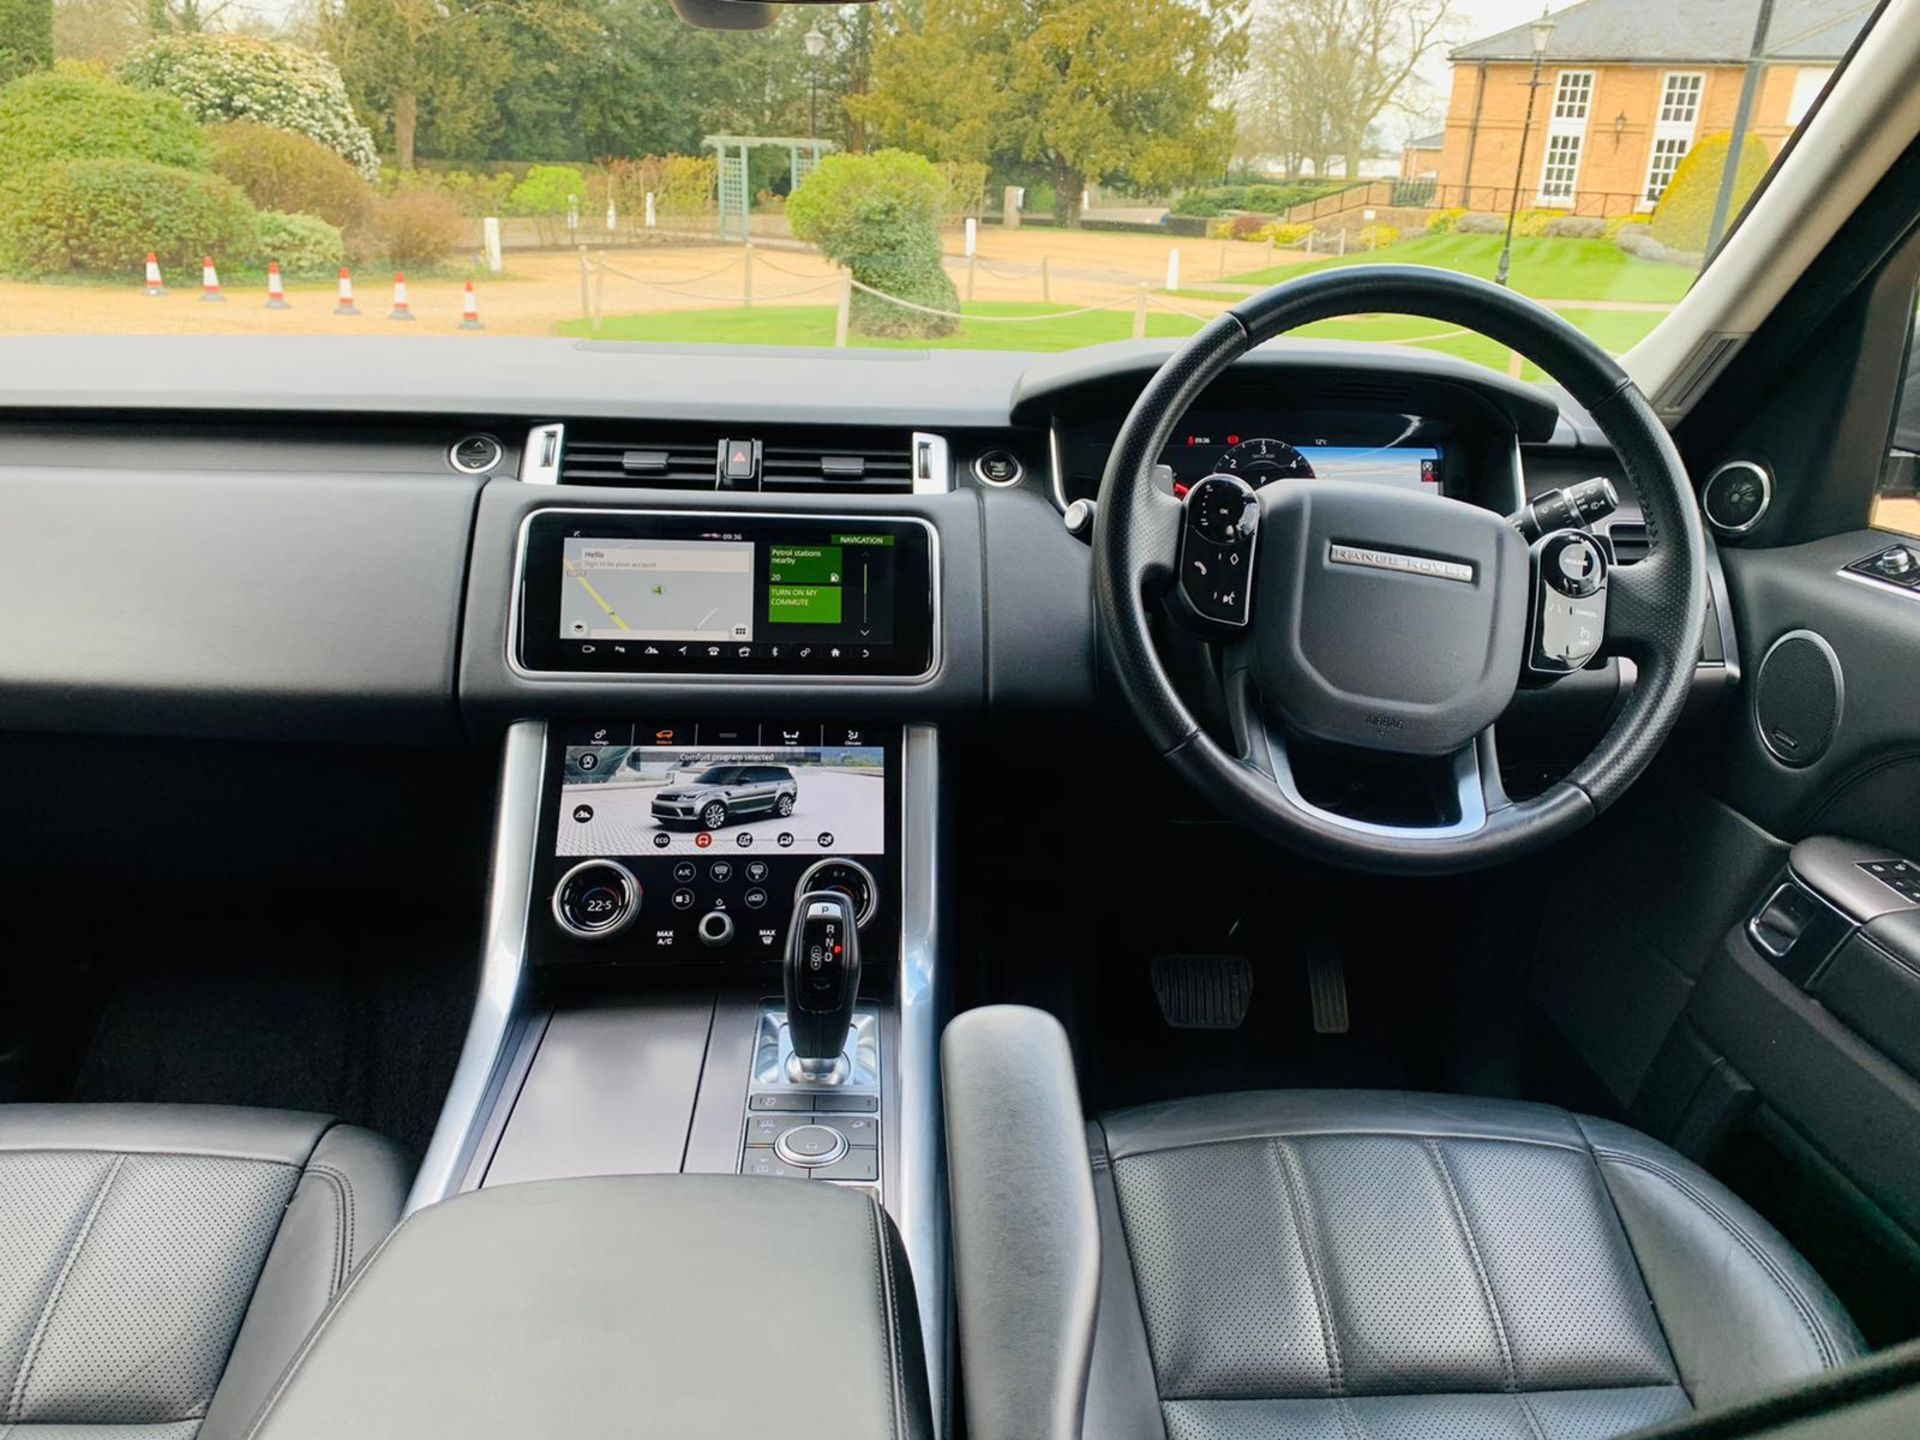 (RESERVE MET) Range Rover Sport 3.0 SDV6 HSE Auto - 2019 - 1 Keeper From New - Virtual Cockpit - - Image 24 of 42